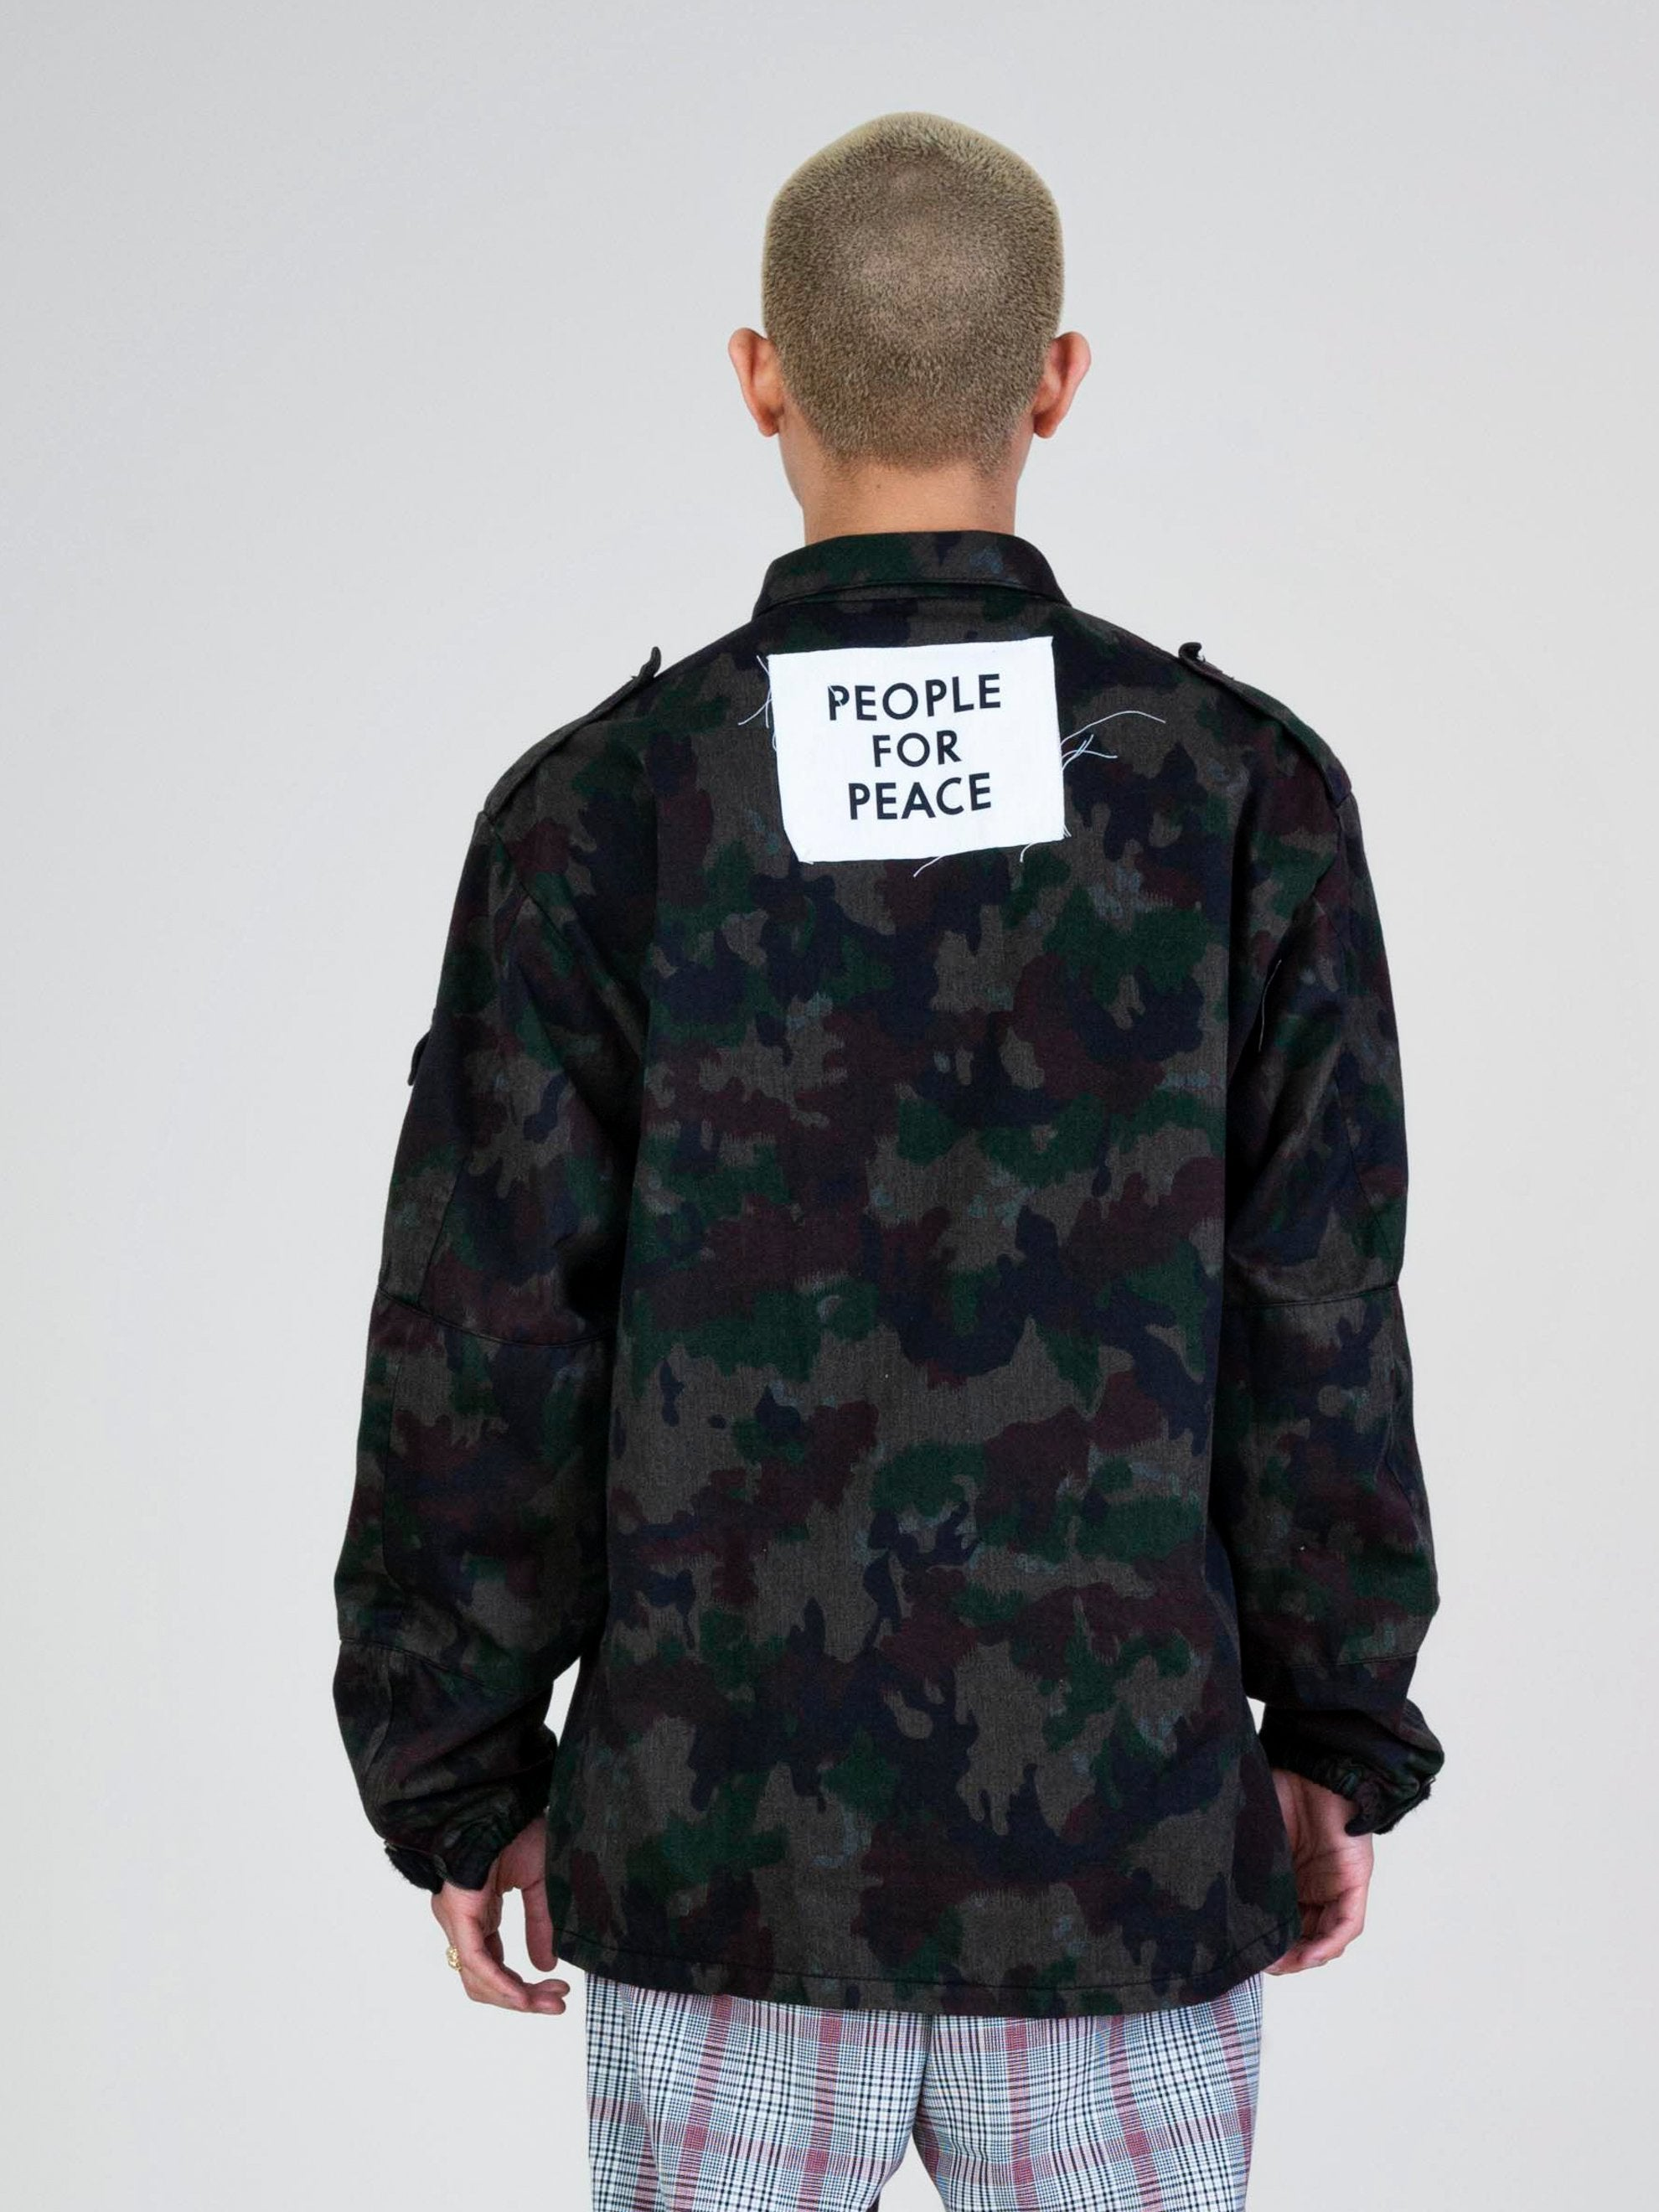 People For Peace Jacket